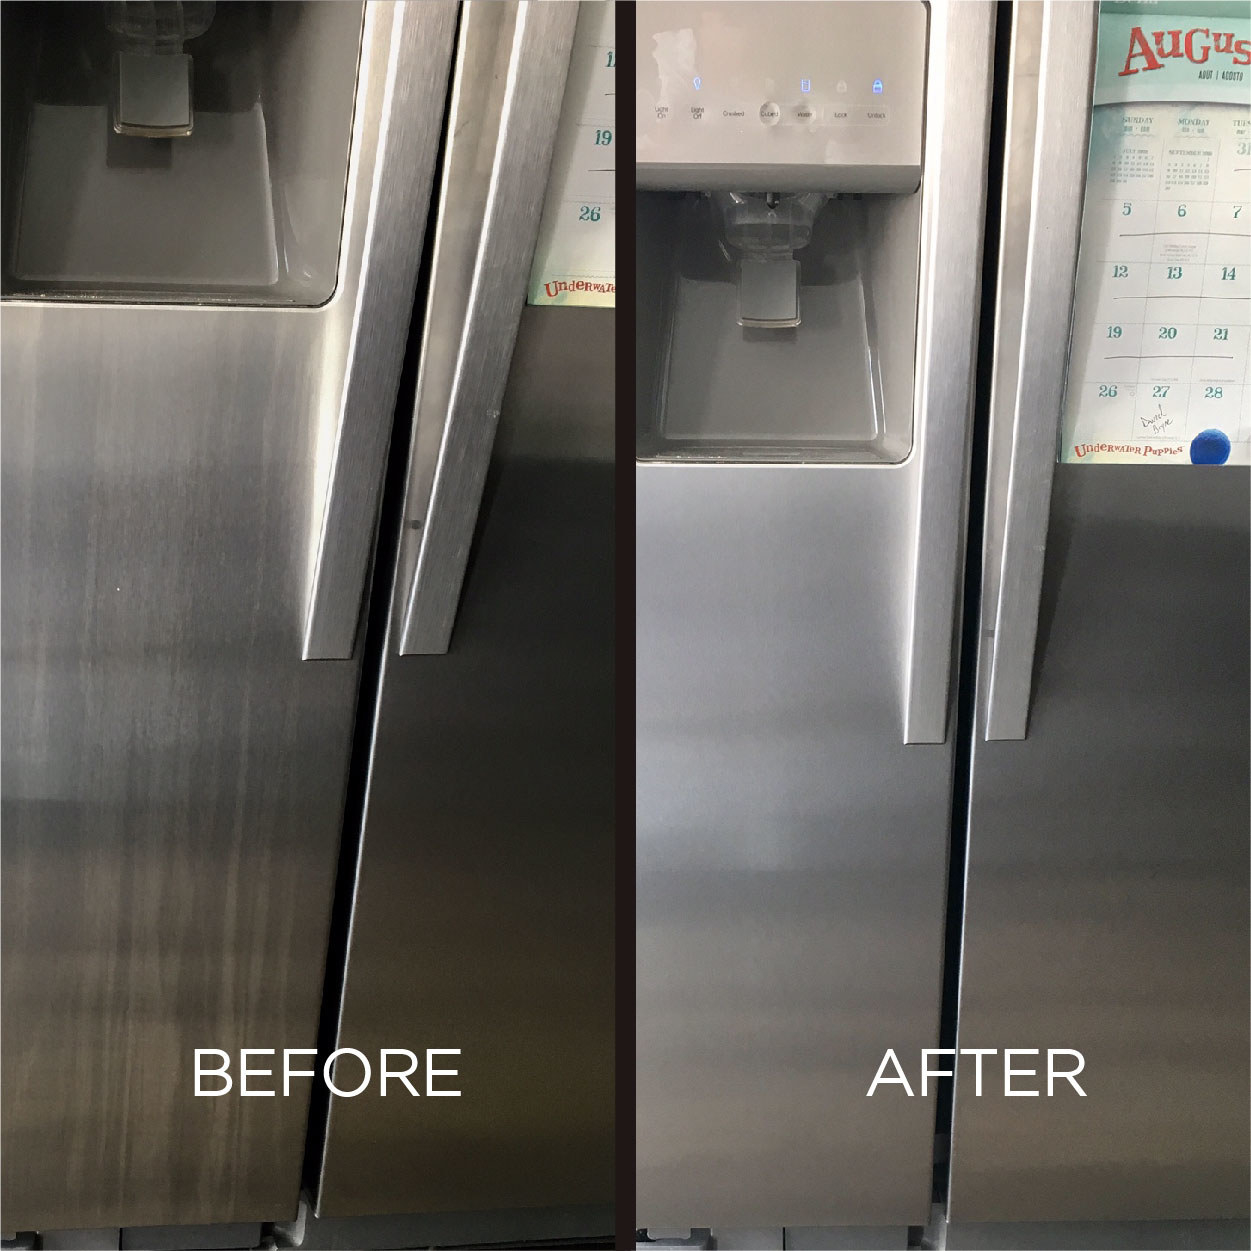 Before and after images showing a stainless steel fridge after cleaning with wipes